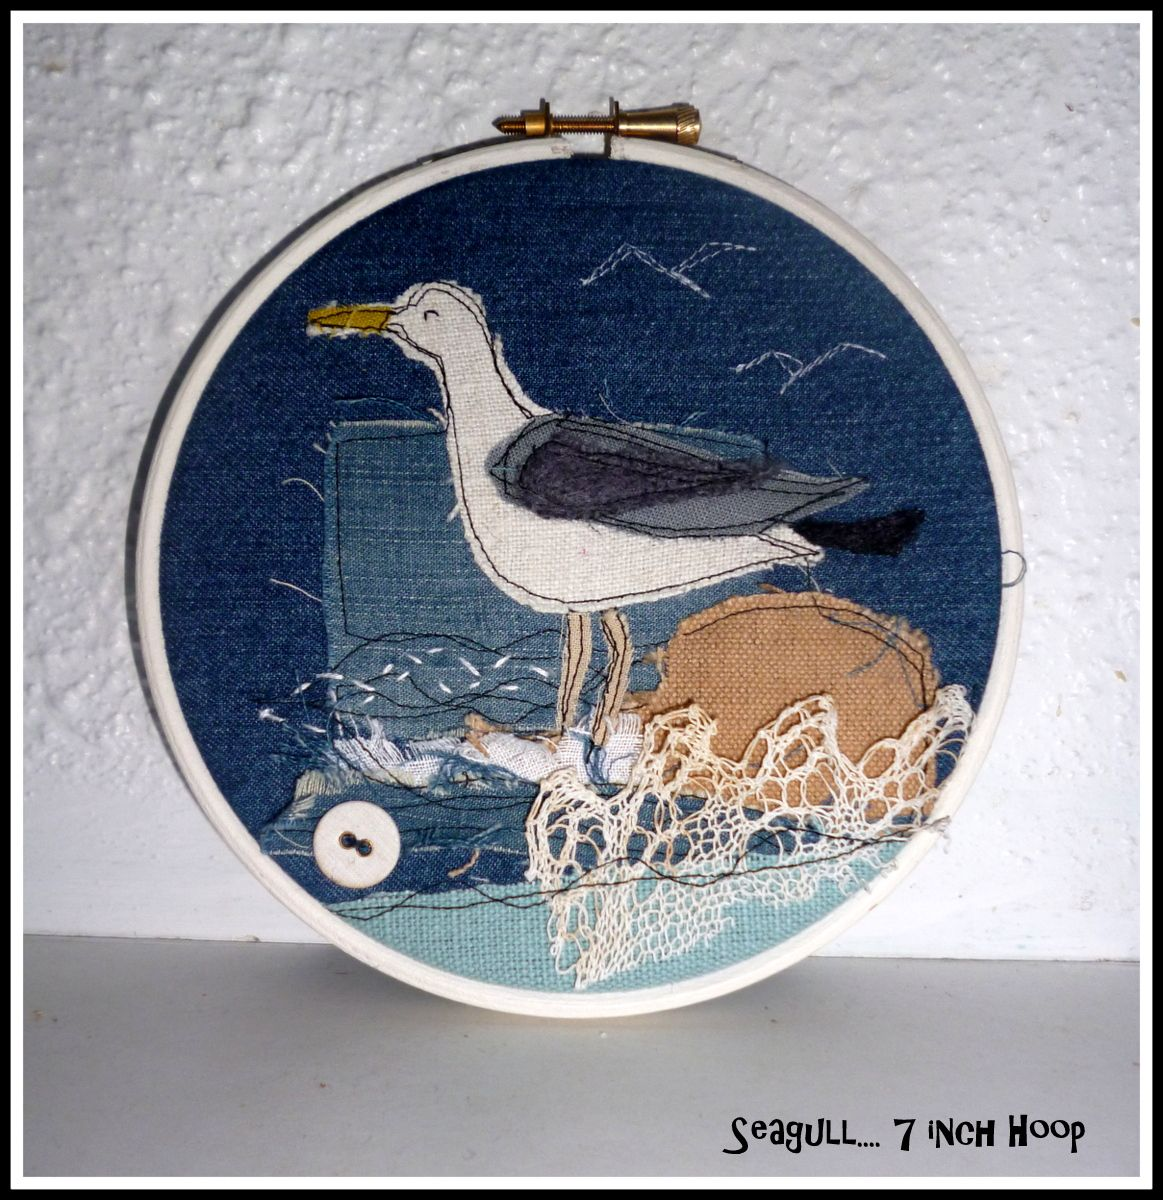 Loopy's seagull